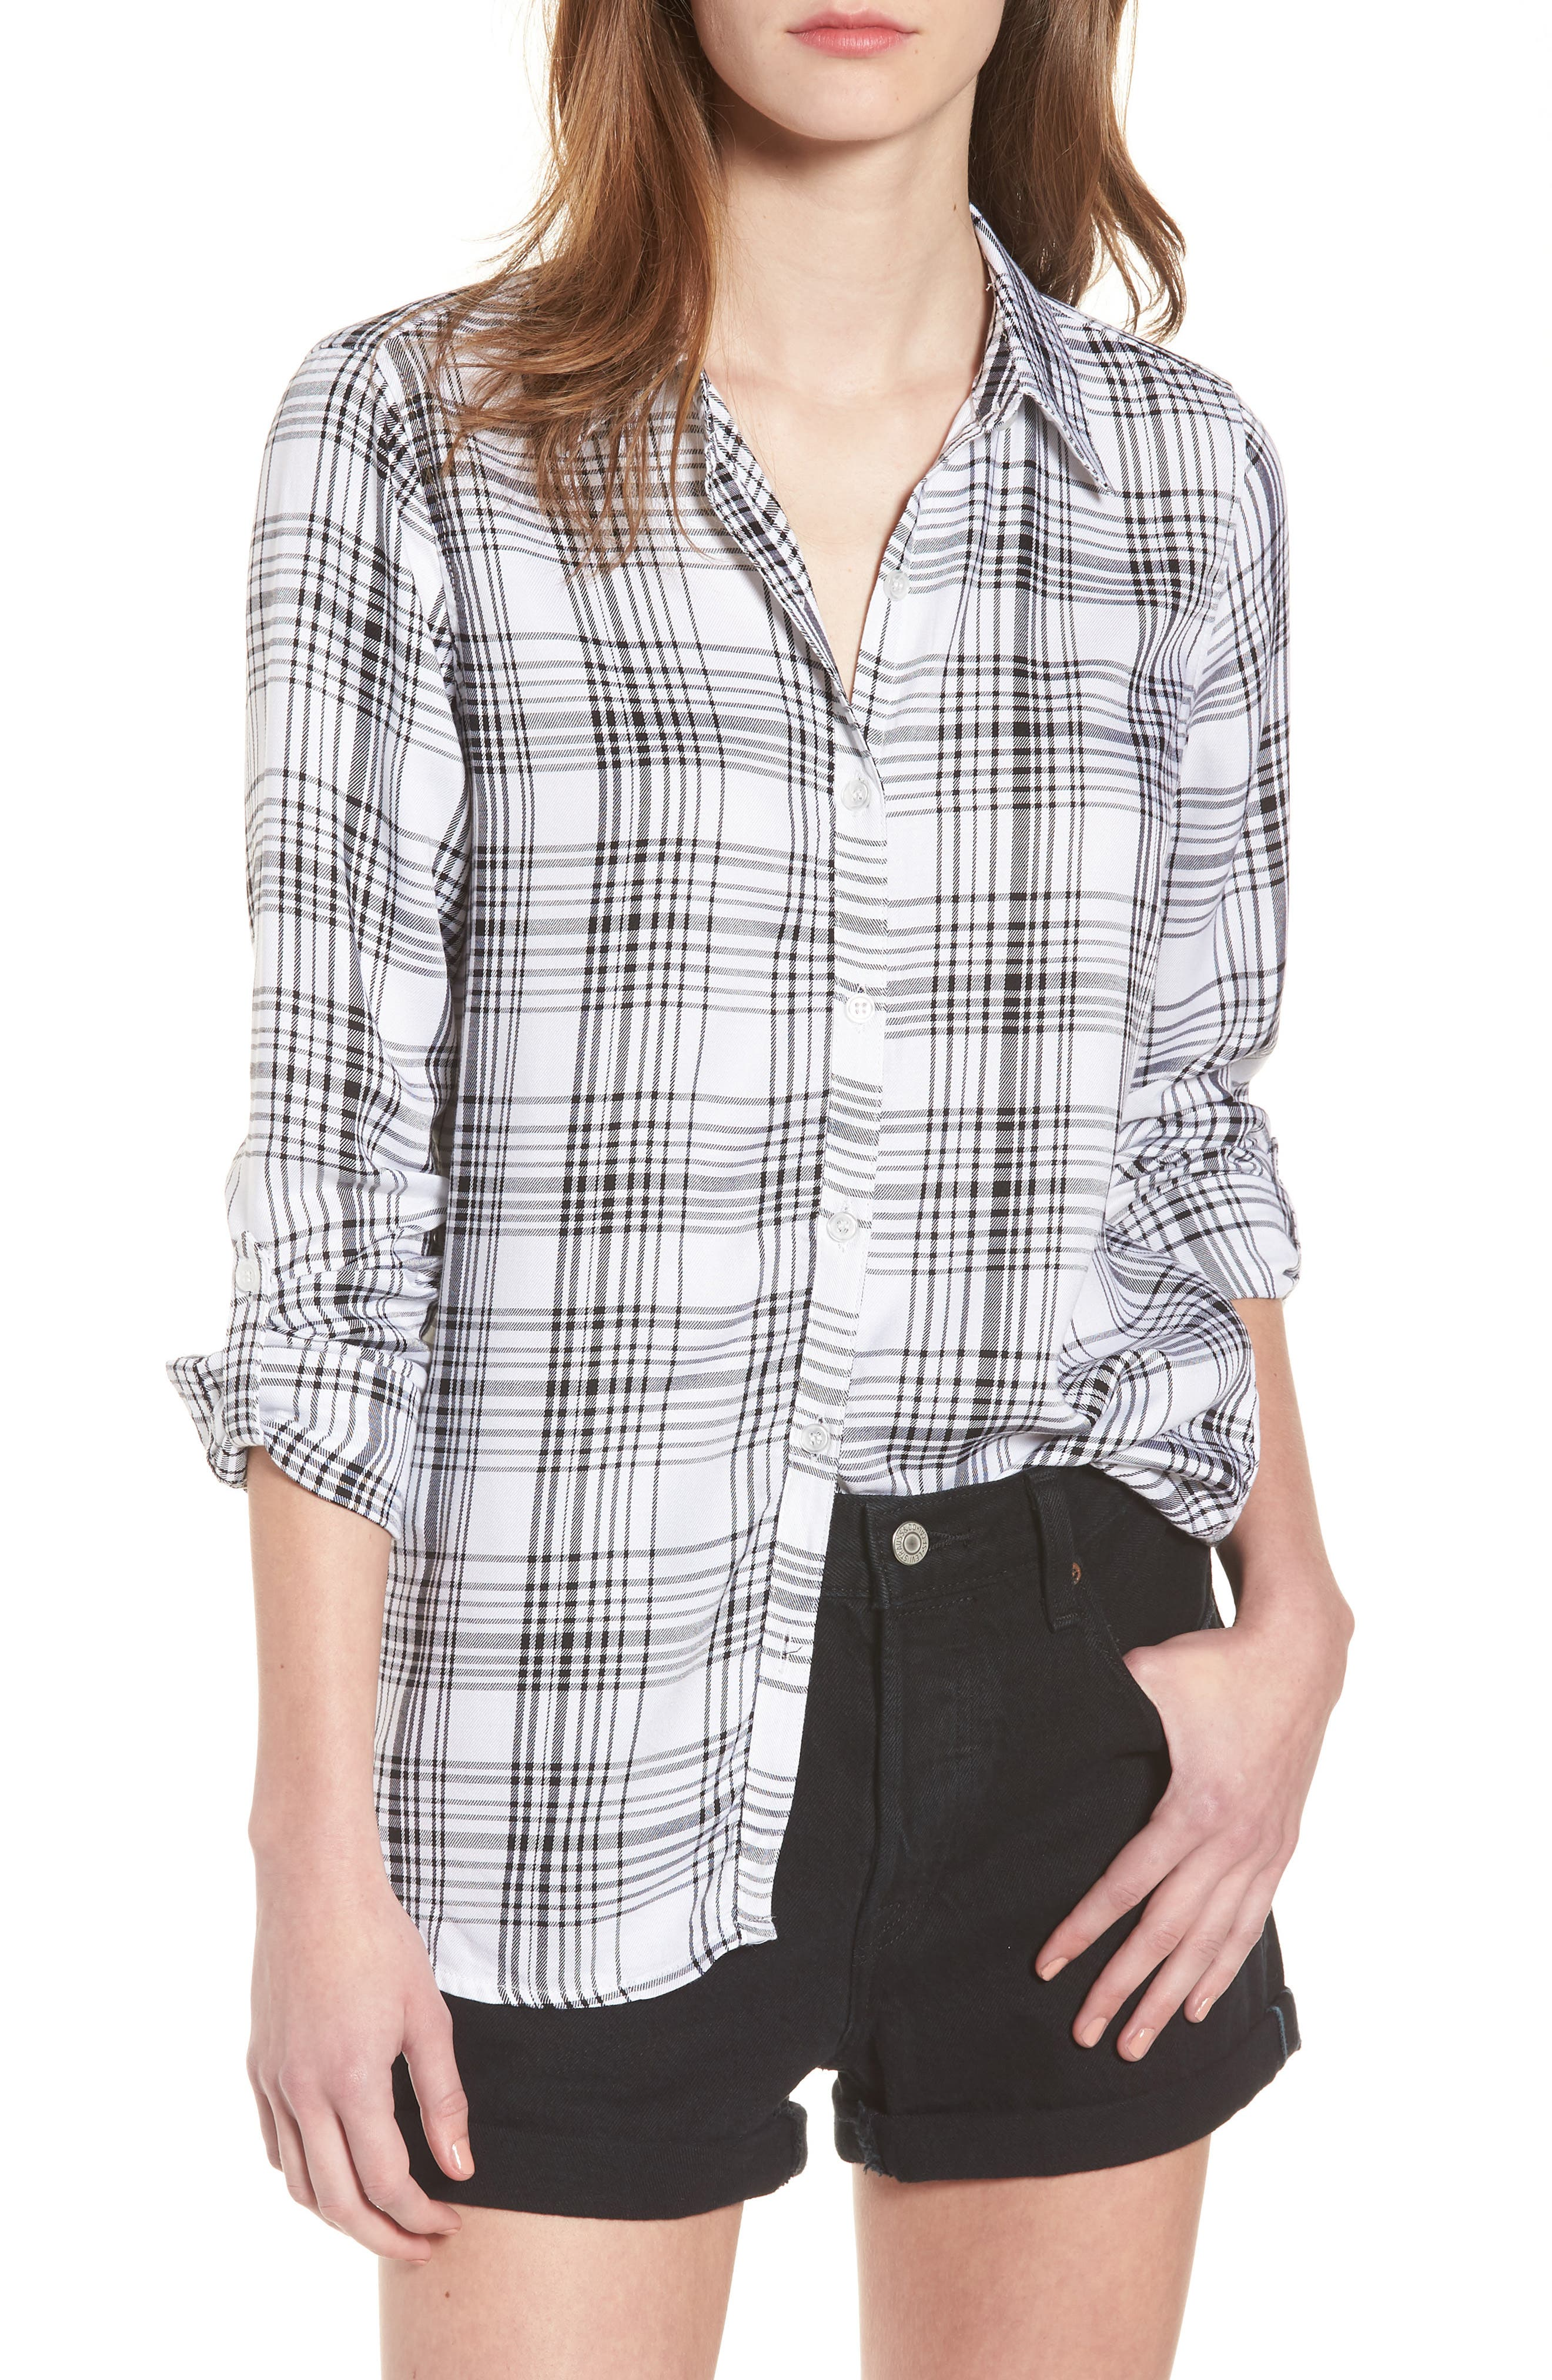 Roll-Tab Shirt,                         Main,                         color, Black White Plaid